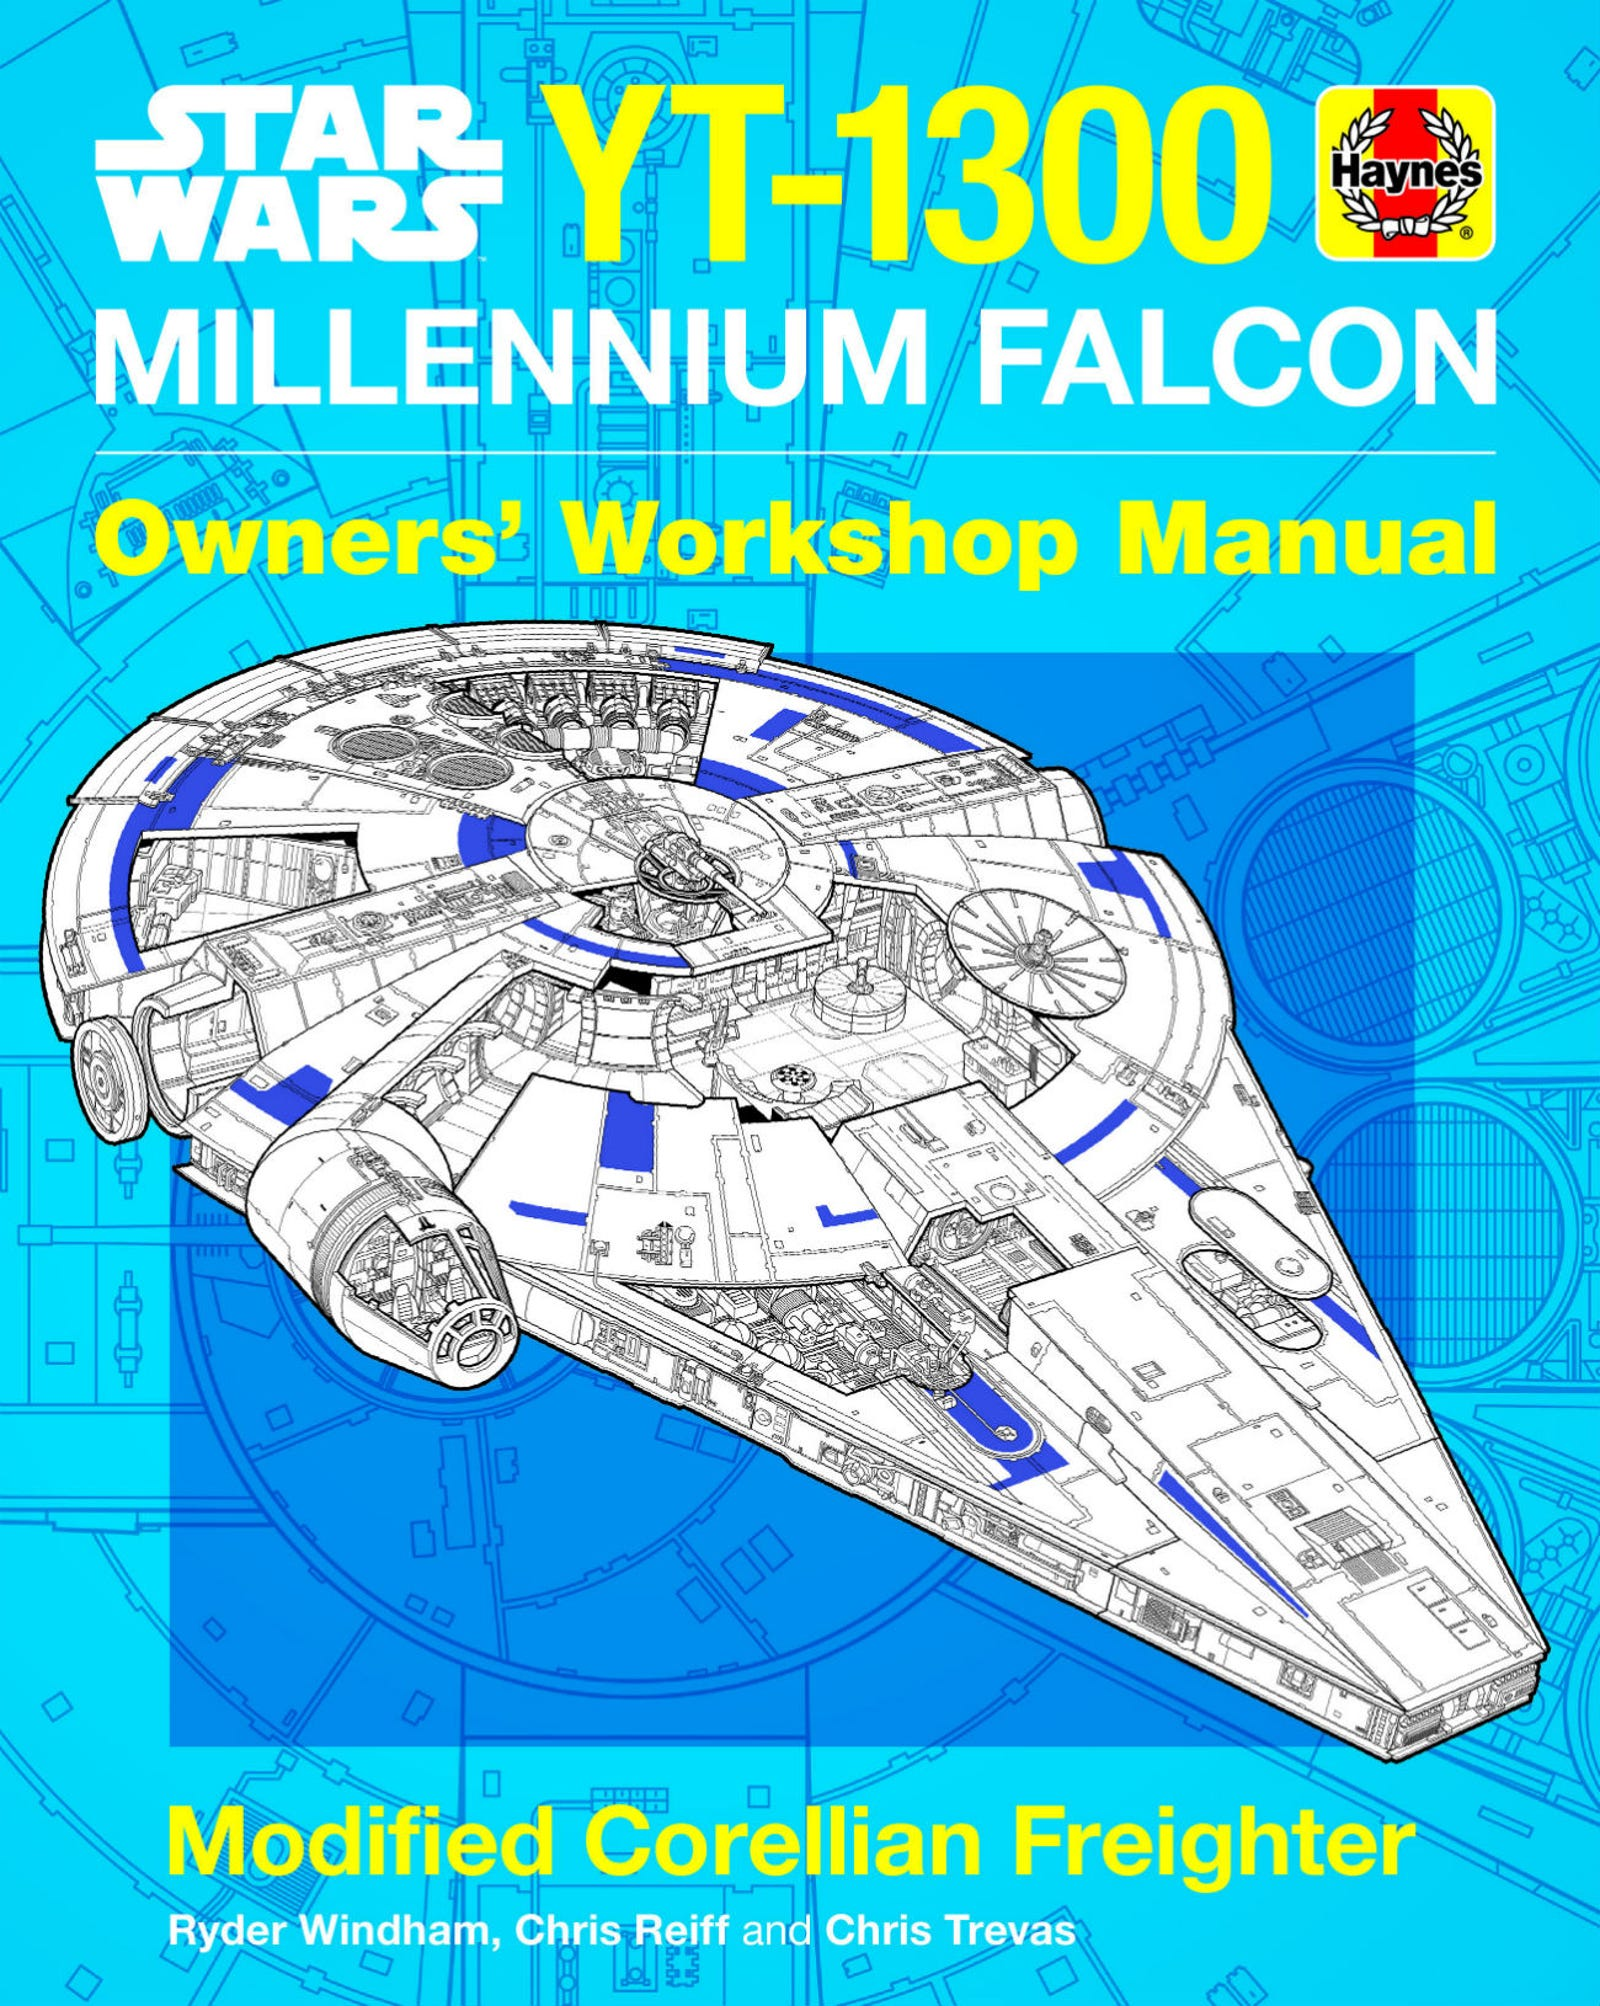 The cover of the Millennium Falcon Owner's Workshop Manual